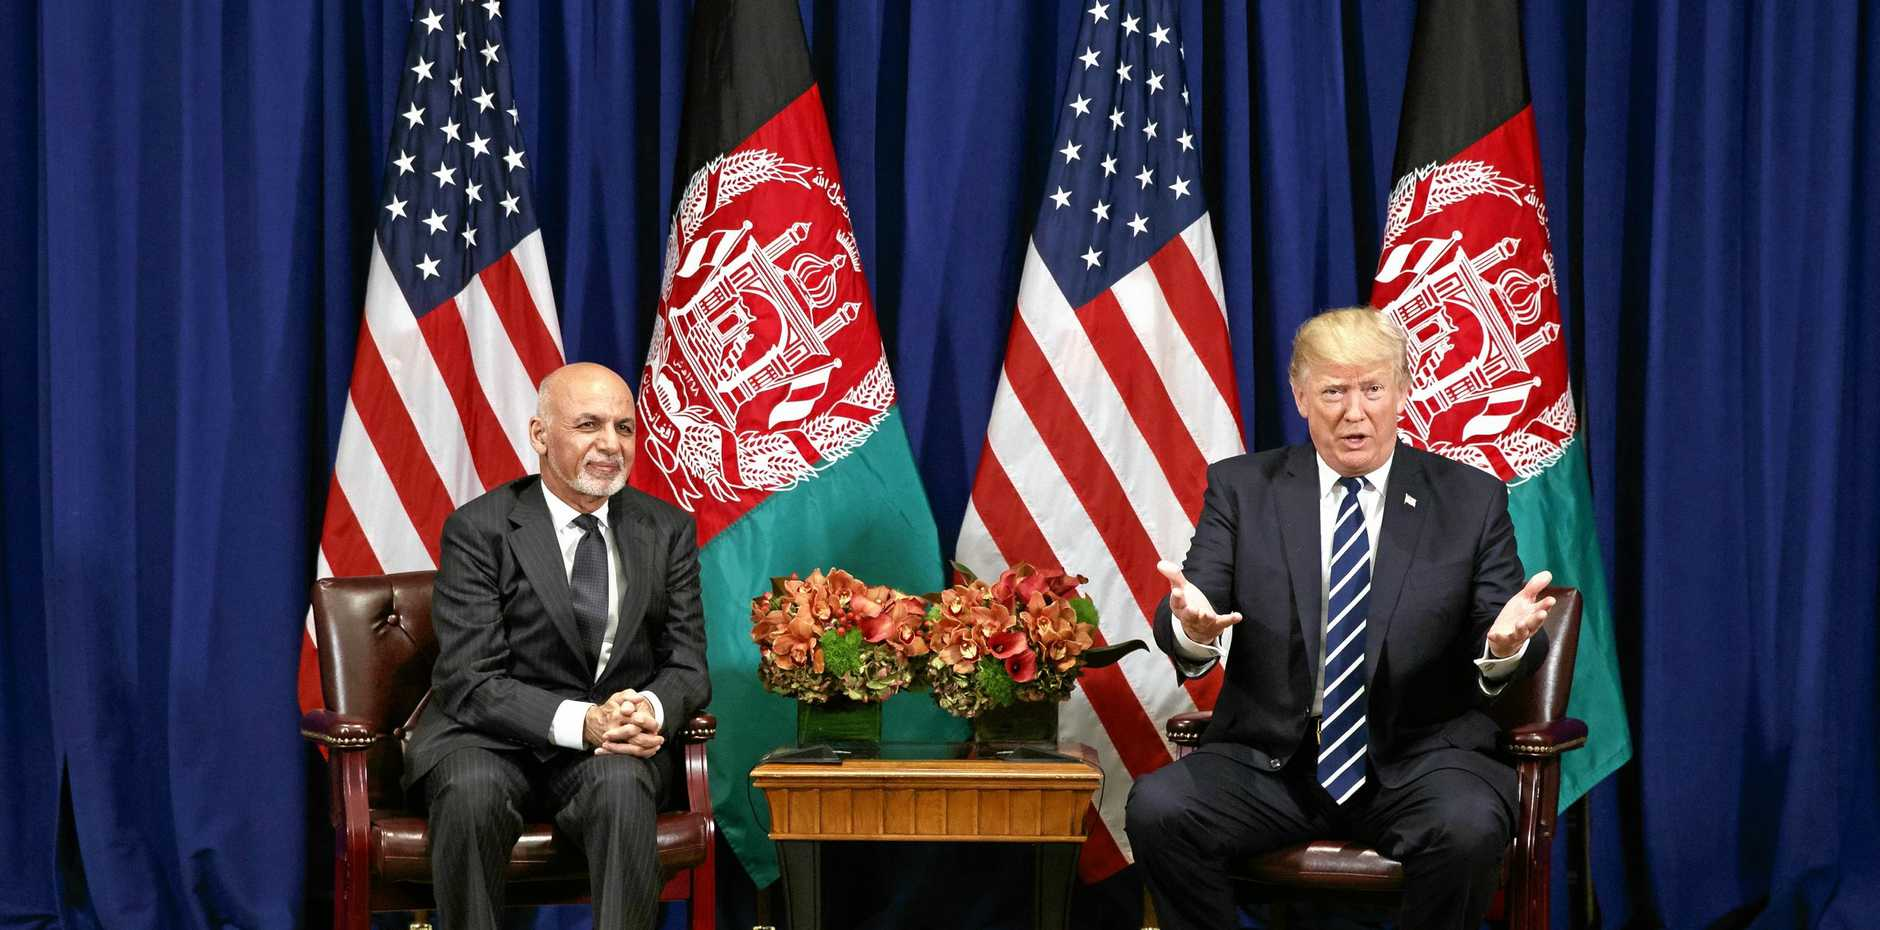 Afghan President Ashraf Ghani meets with US President Donald Trump at the Palace Hotel during the United Nations General Assembly in New York.